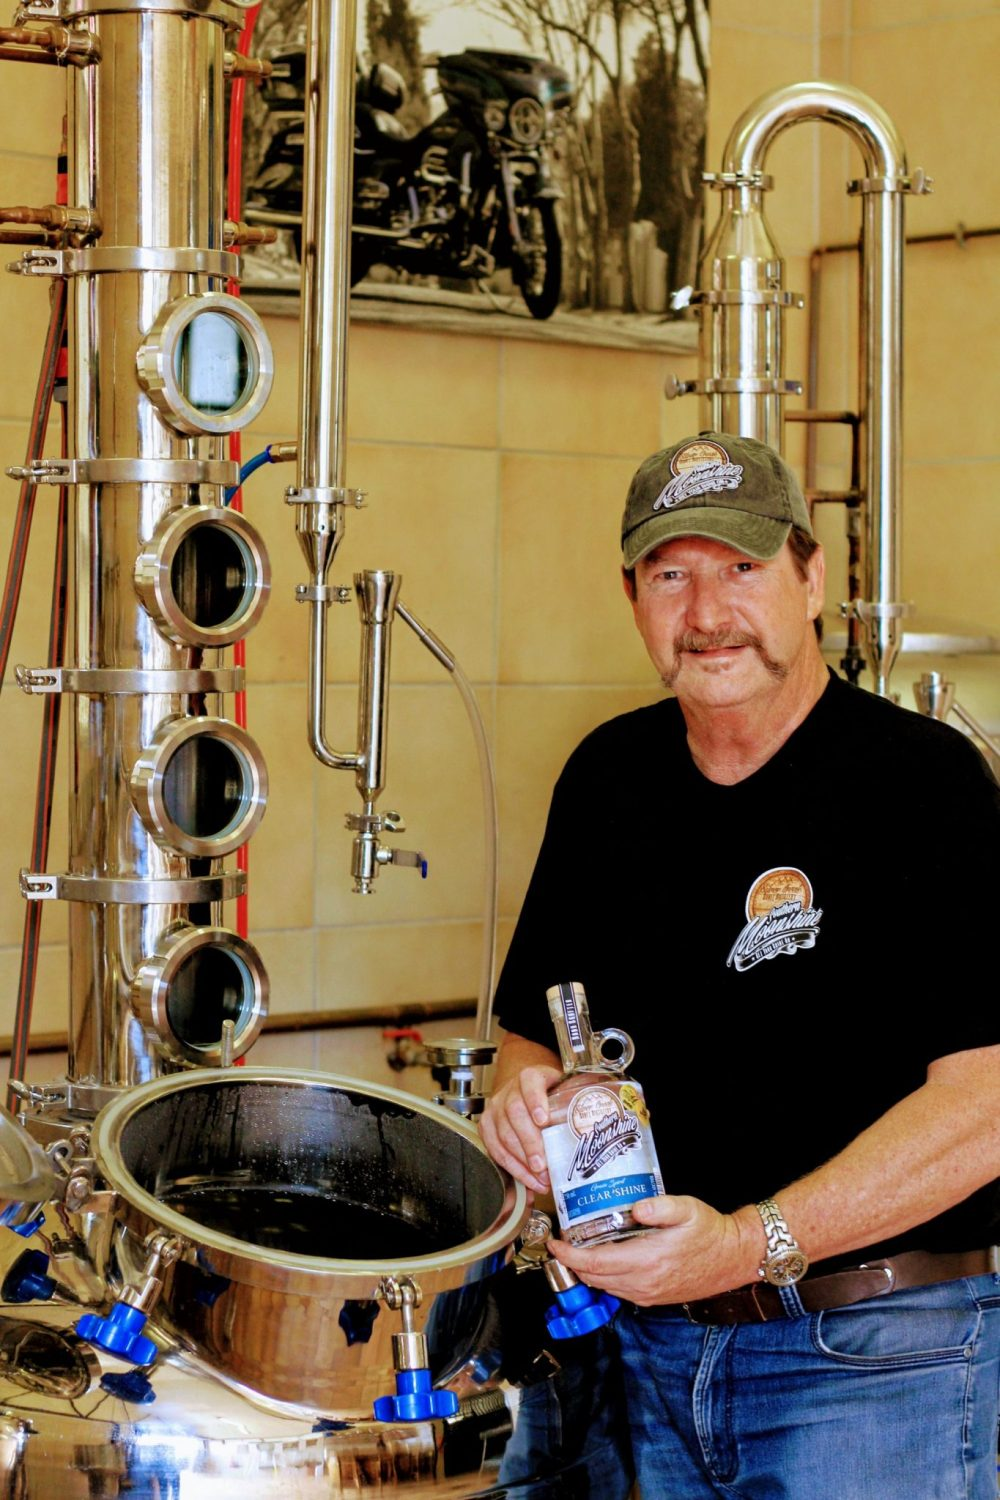 Silver Creek Moonshine Chief Distiller and Founder Mark Taverner sonia cabano blog eatdrinkcapetown